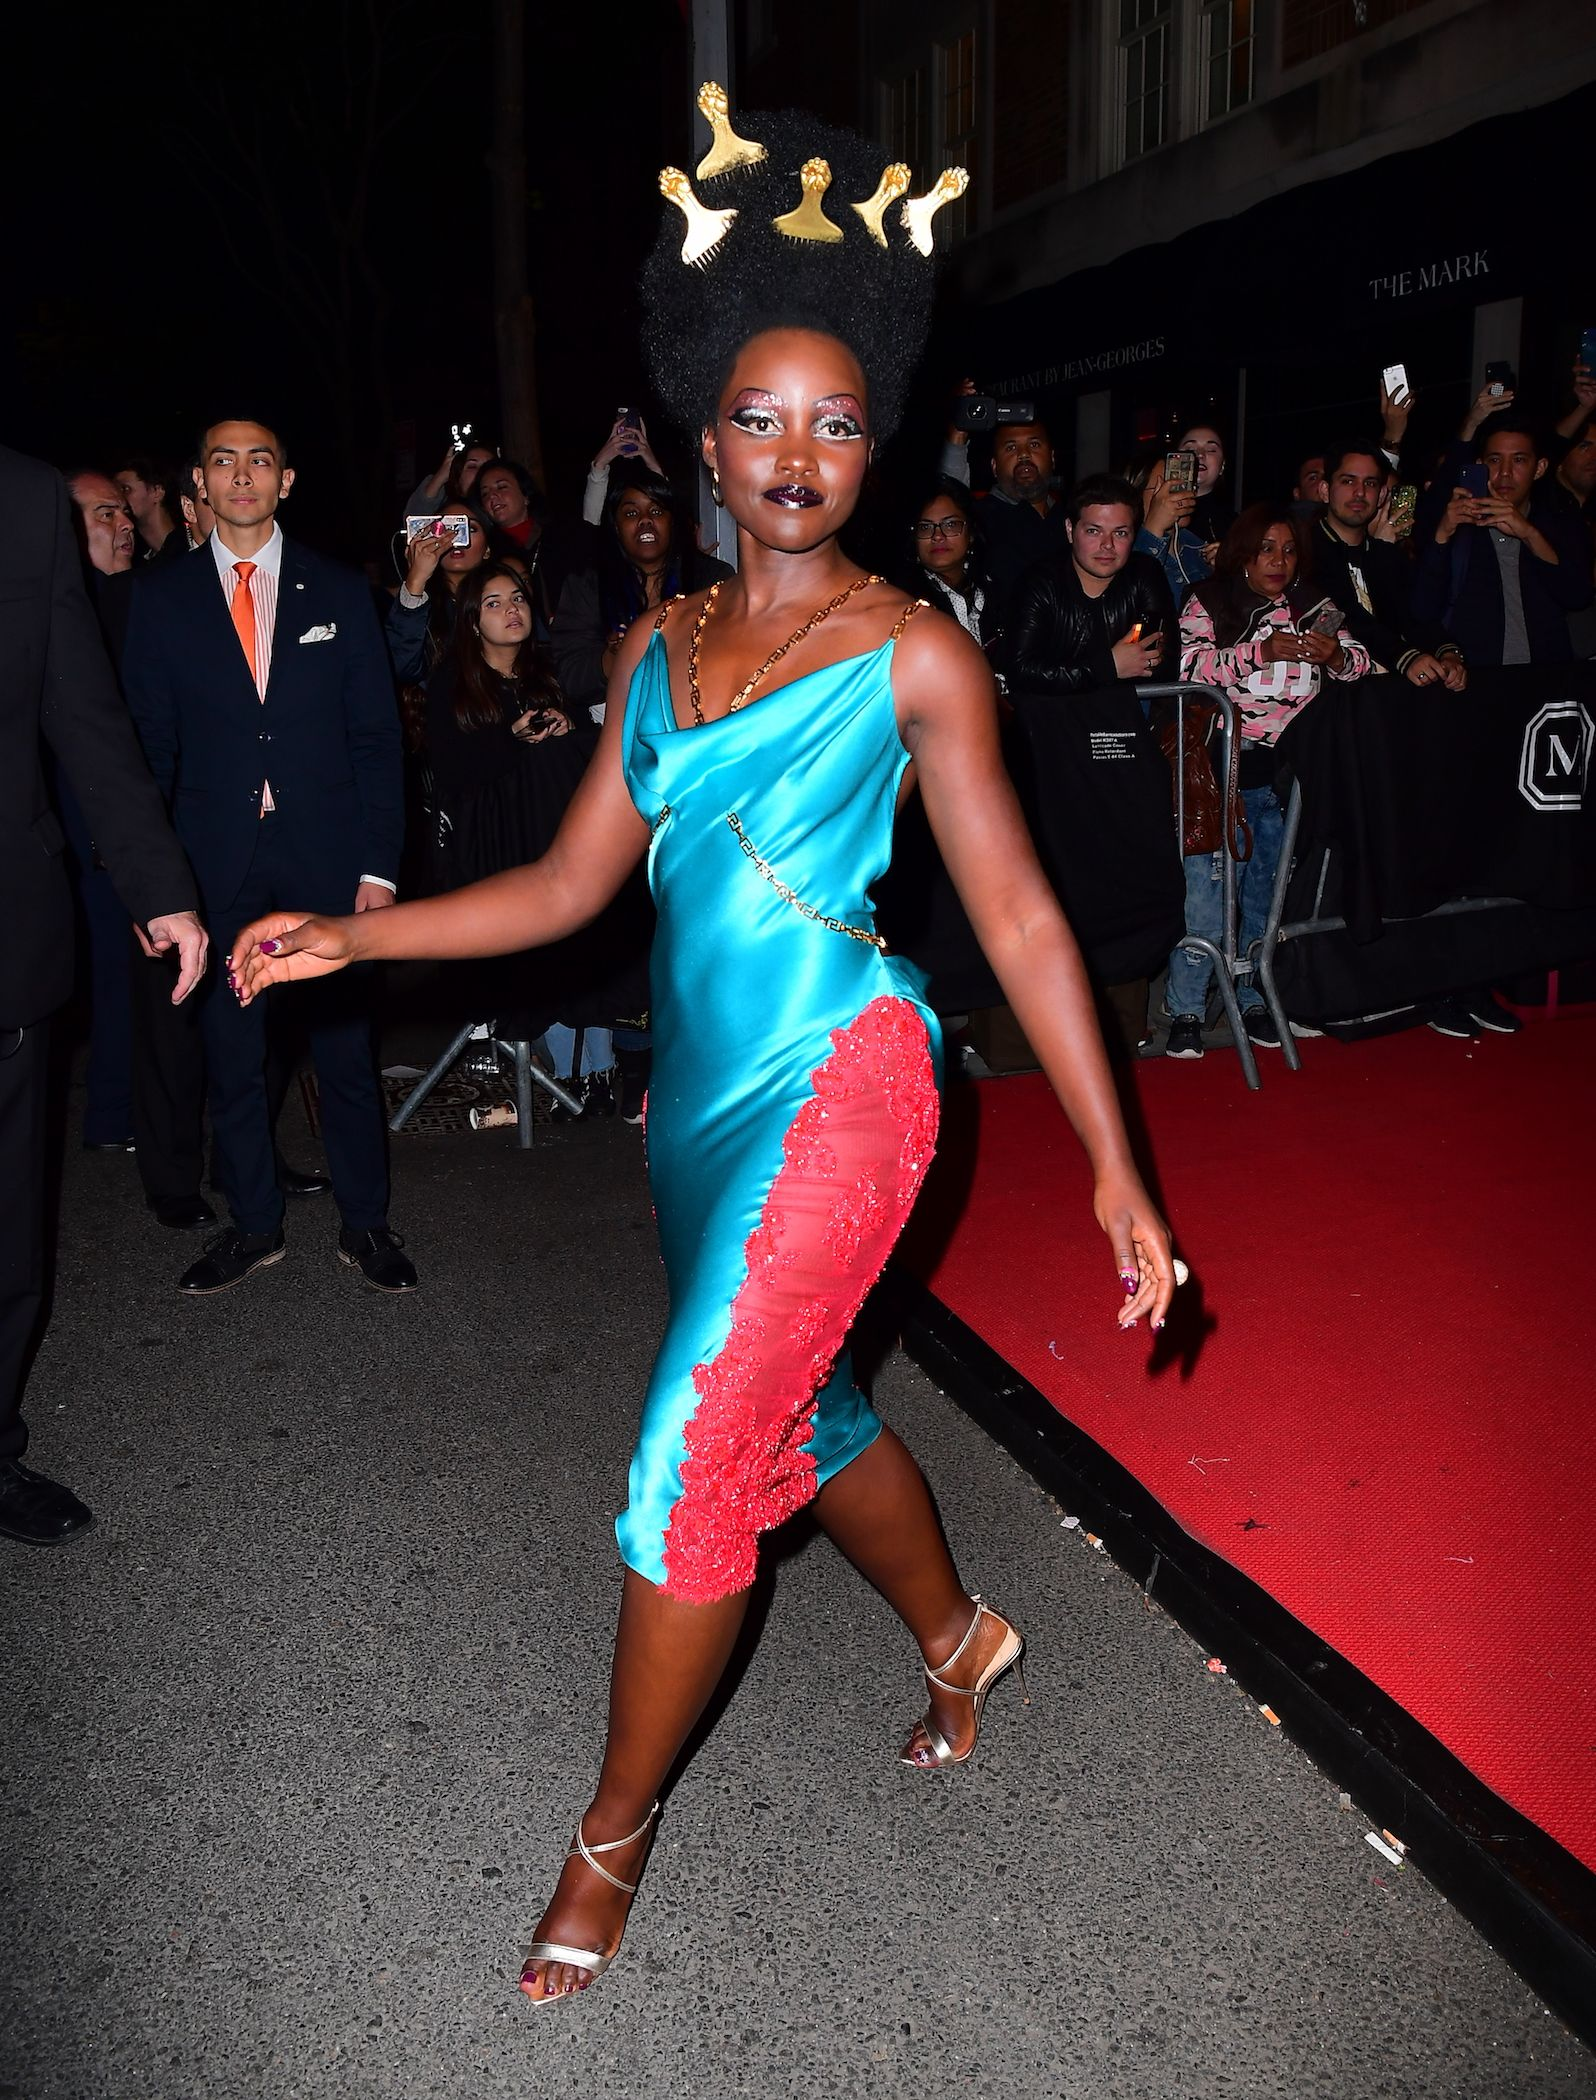 Lupita Nyong'o The actress ditched her voluminous gown for a more body-hugging dress.